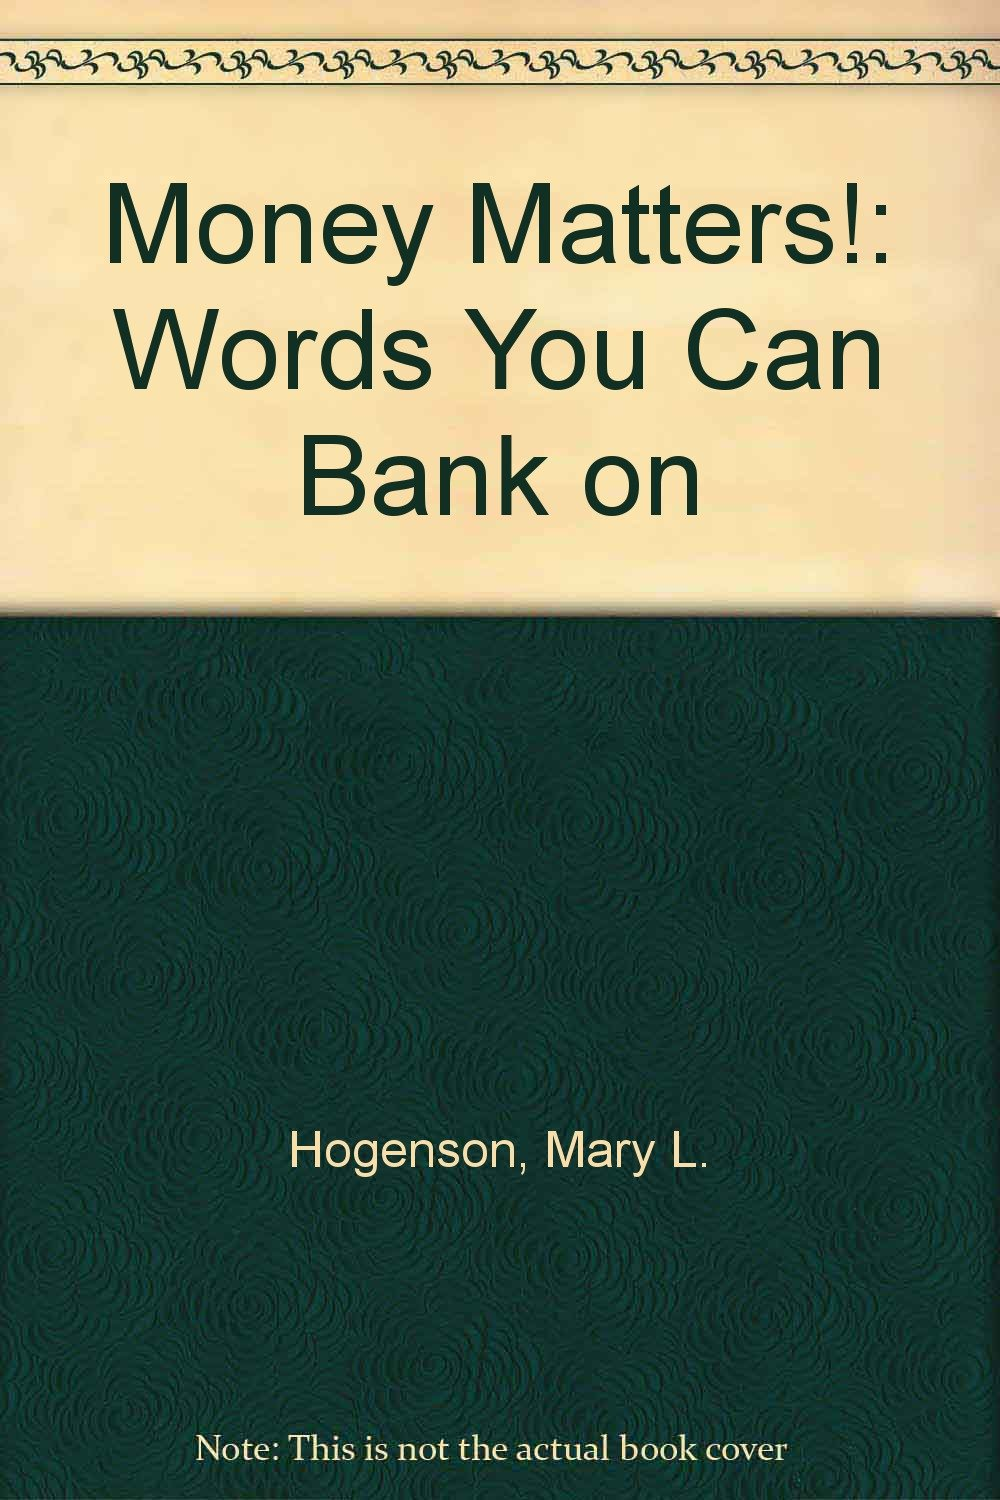 words that deals with money